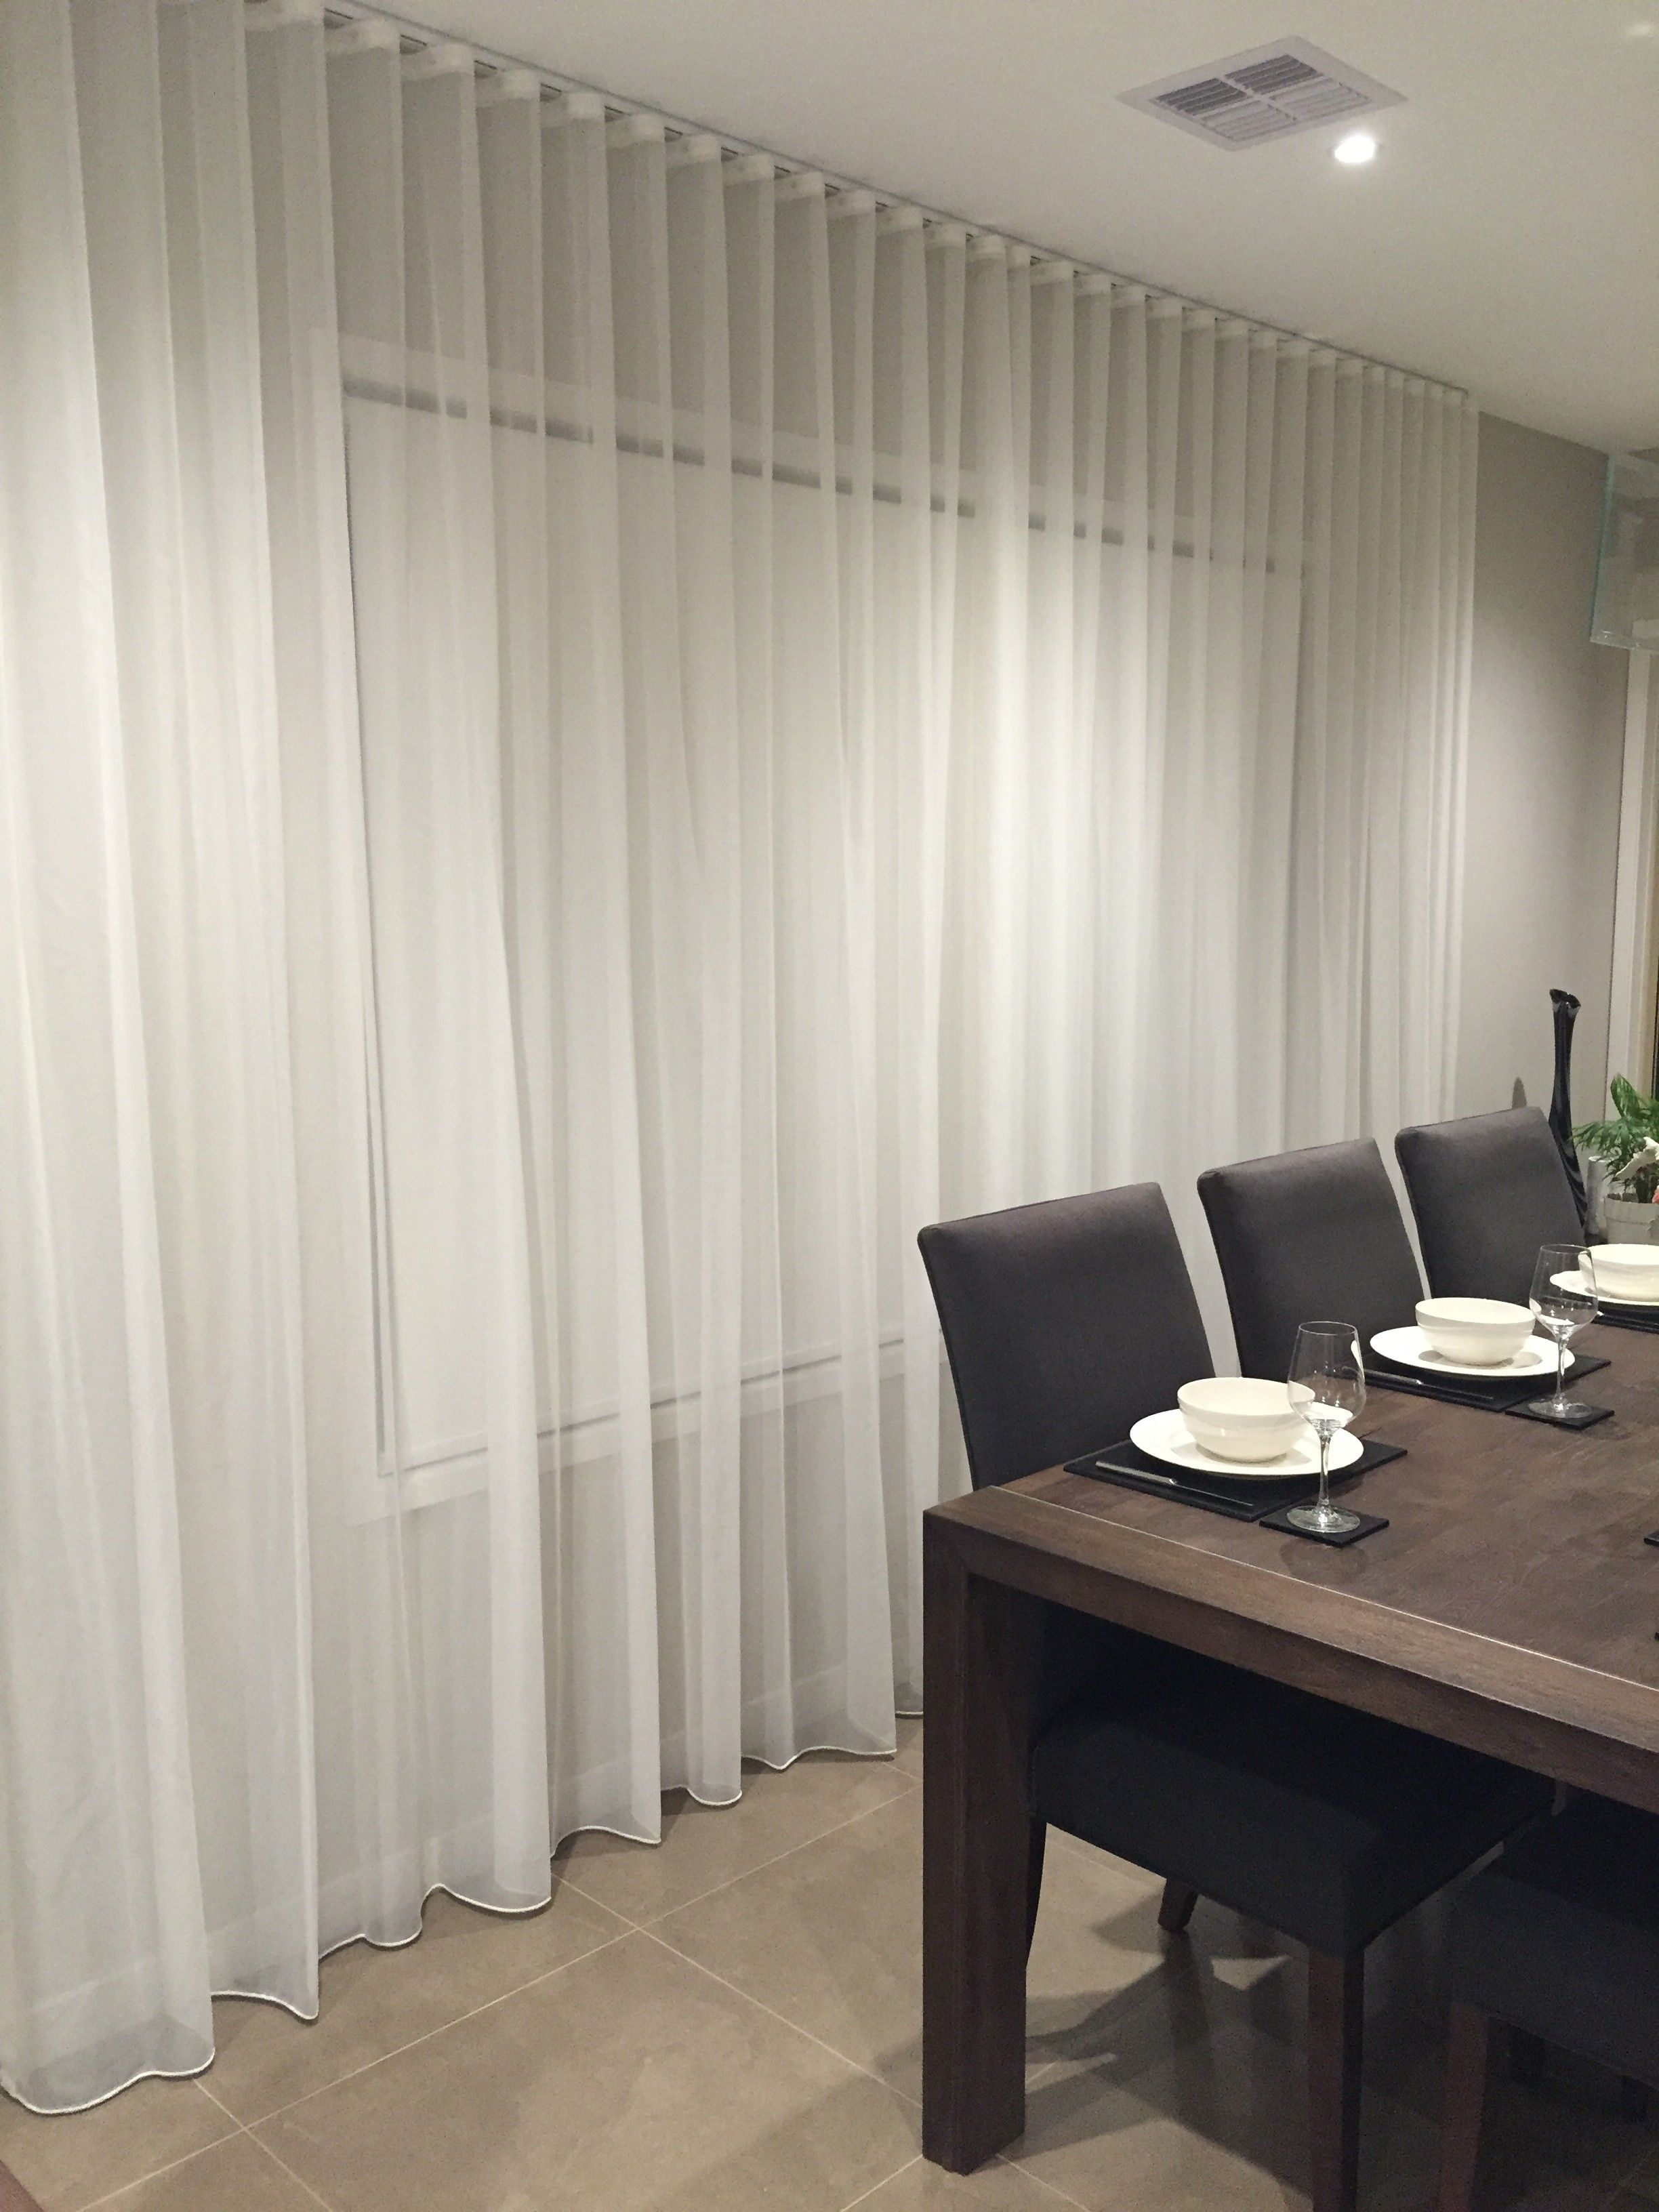 Diy Ripplefold Curtains Amanda Rogers Roller Blinds Blockout In Vibe 39cloud